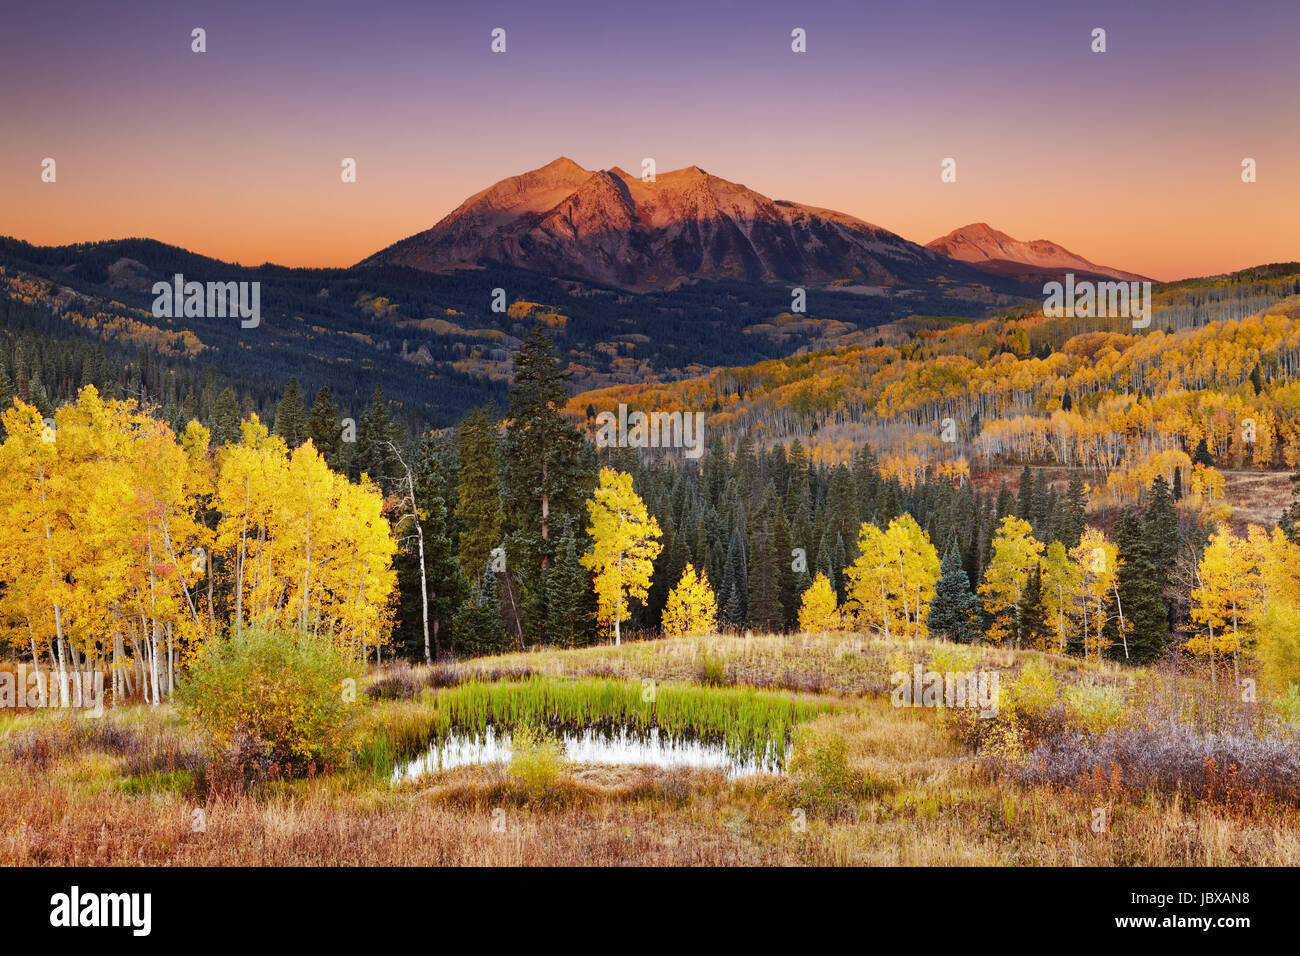 East Beckwith Mountain a sunrise vicino Kebler passano in West Elk Mountains, Colorado, STATI UNITI D'AMERICA Immagini Stock